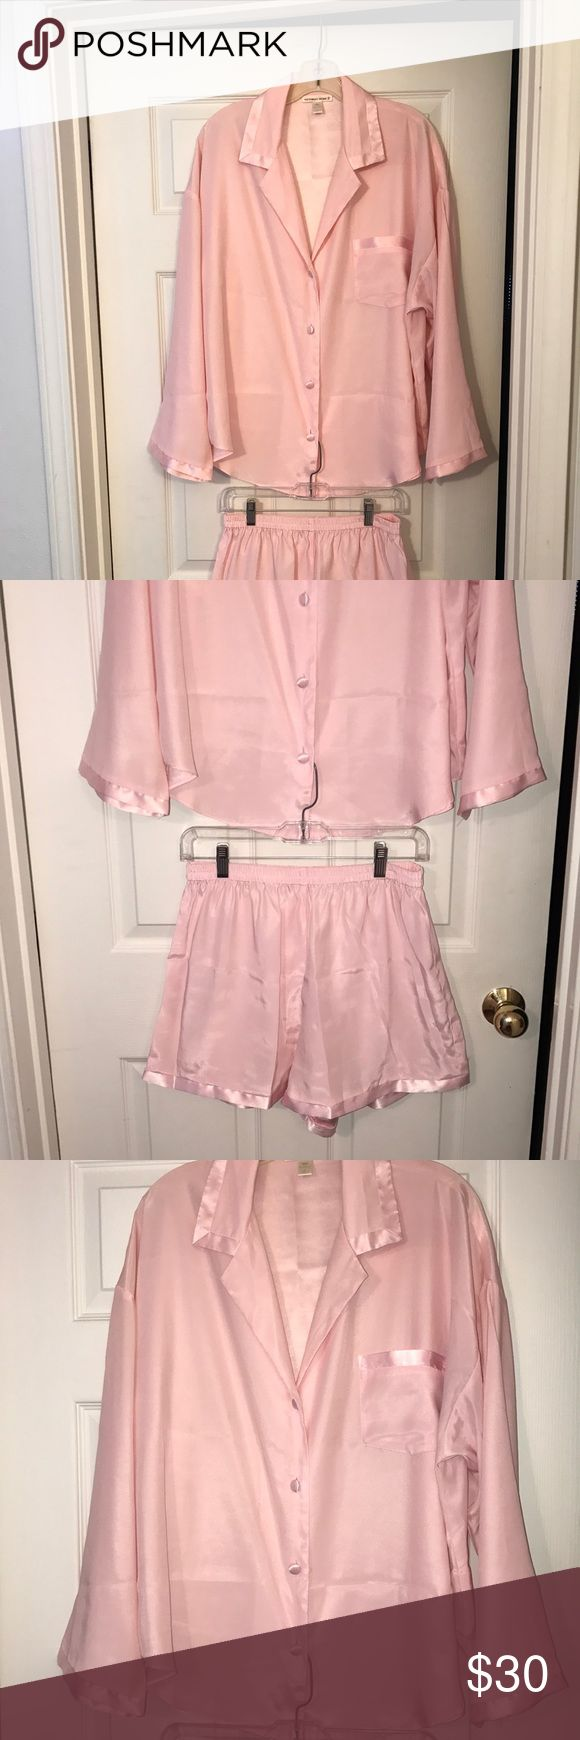 NWOT VS - Beautiful pink pajama short set🎀💓 Top collar and sleeves are trimmed in satin.  Shorts are elastic waistband with satin trim on the legs.  This is such a stunning classy set! Victoria's Secret Intimates & Sleepwear Pajamas